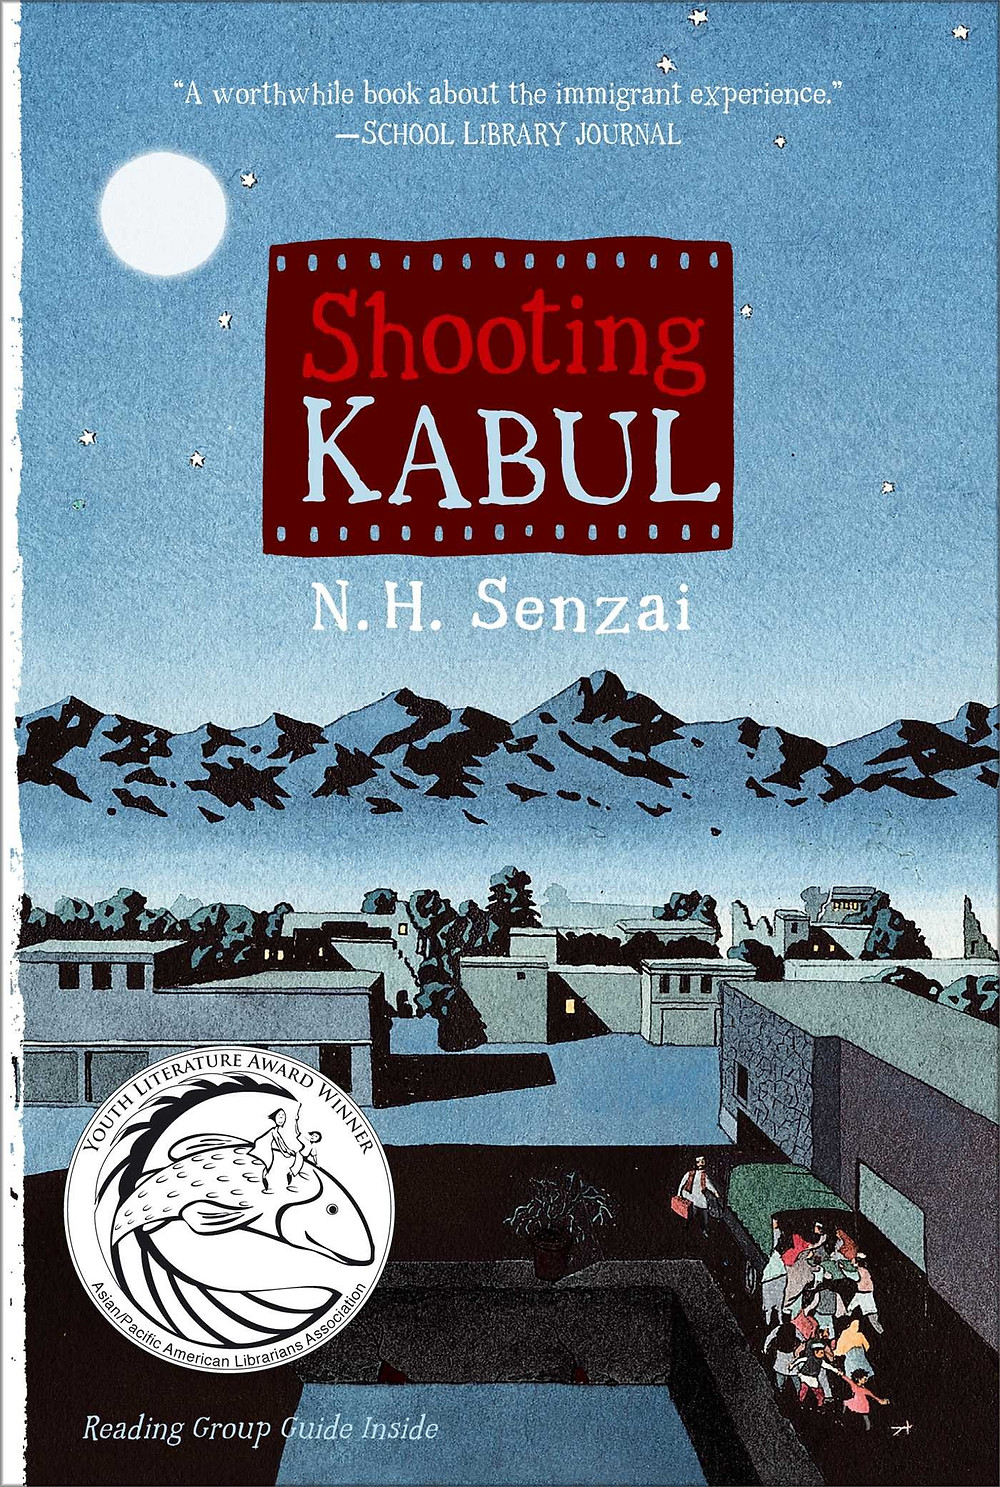 Shooting Kabul ChildrensBook September 11